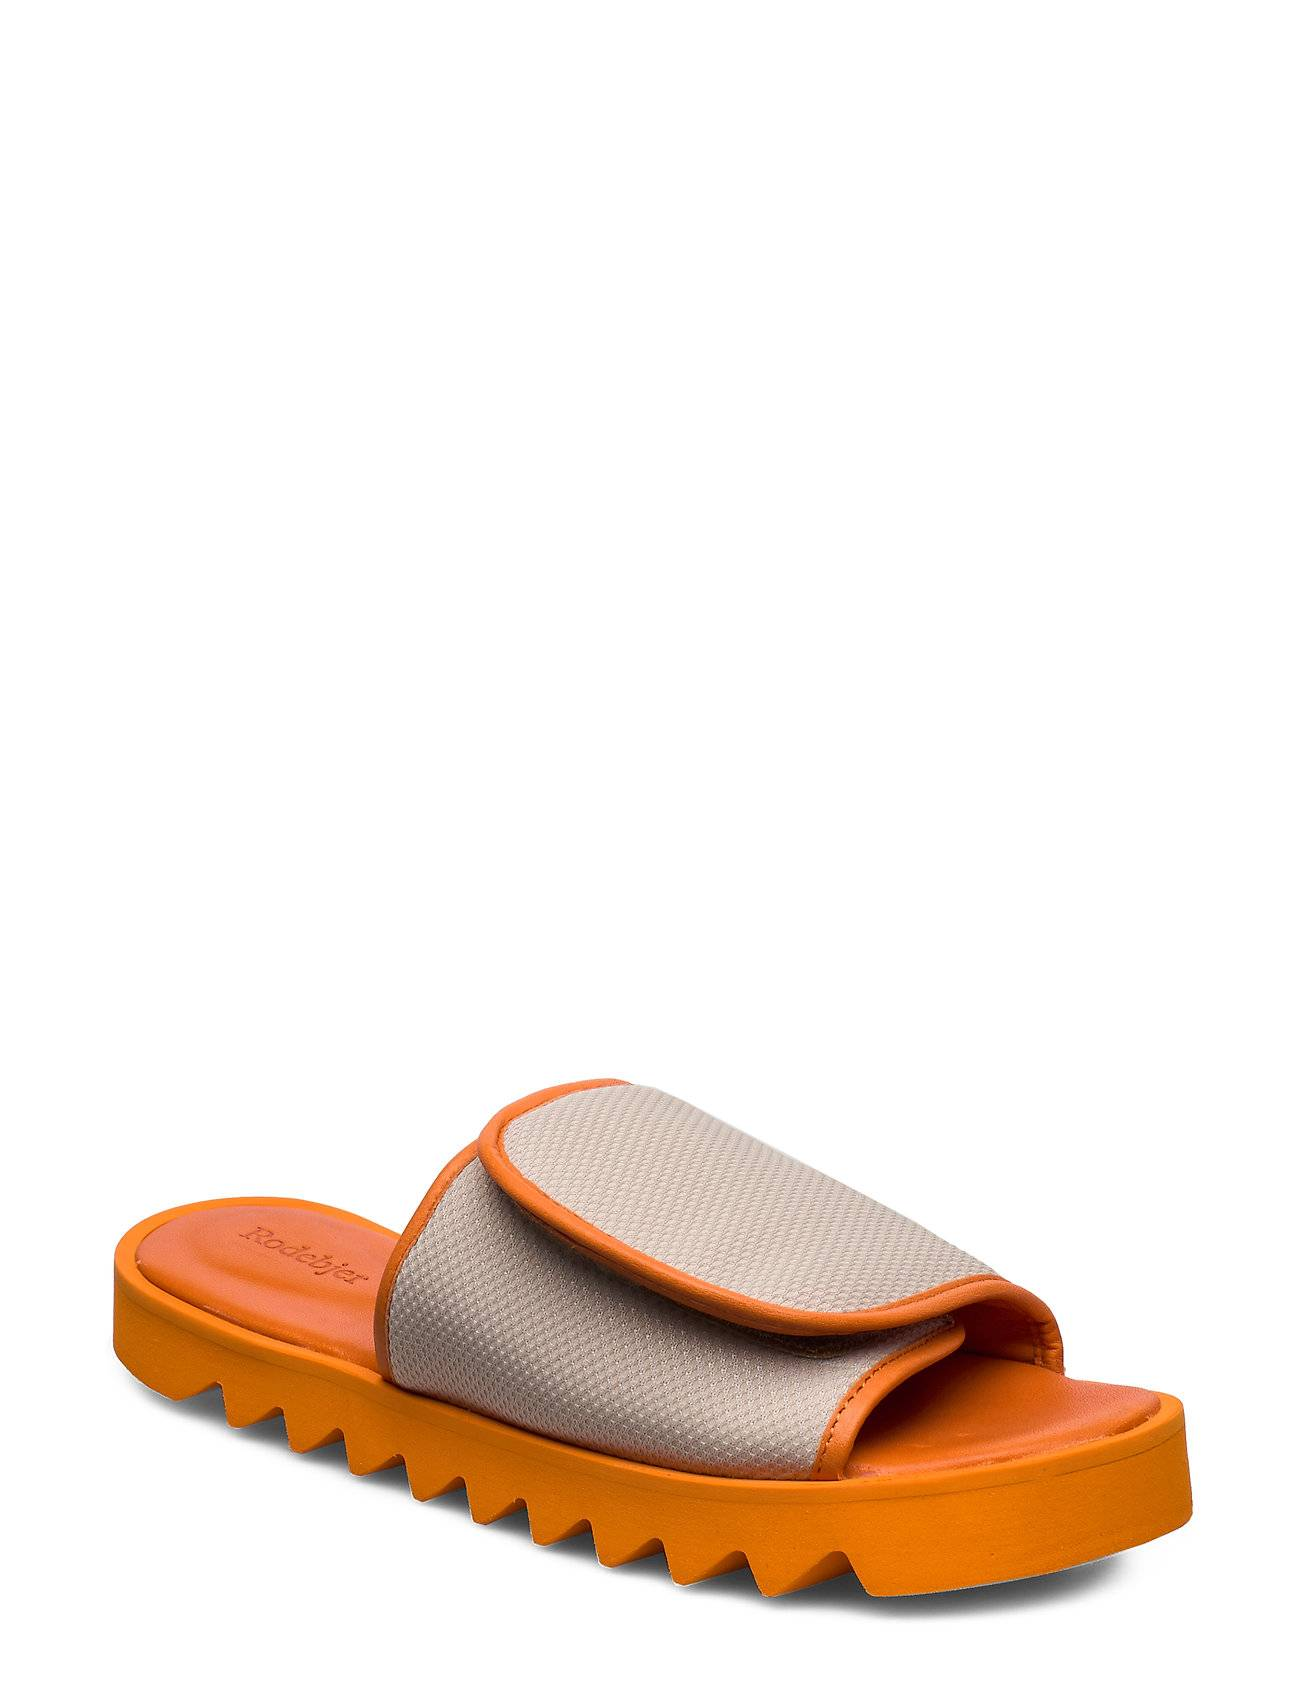 Rodebjer Micki Shoes Summer Shoes Flat Sandals Oranssi RODEBJER